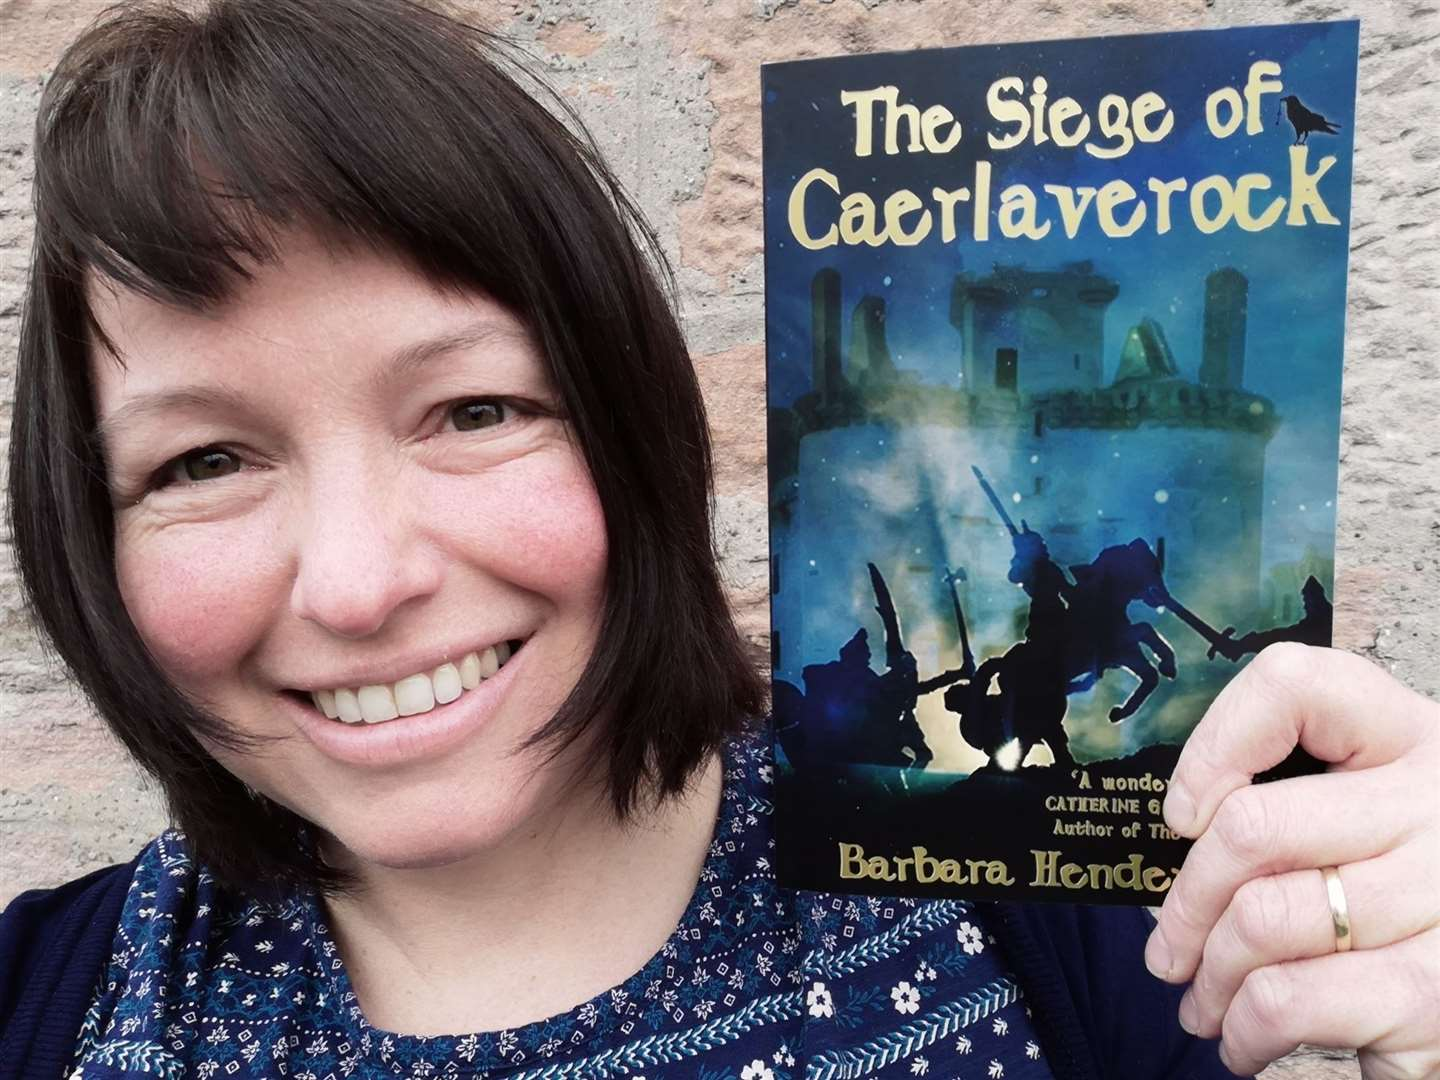 Barbara Henderson with her new book The Siege of Caerlaverock.